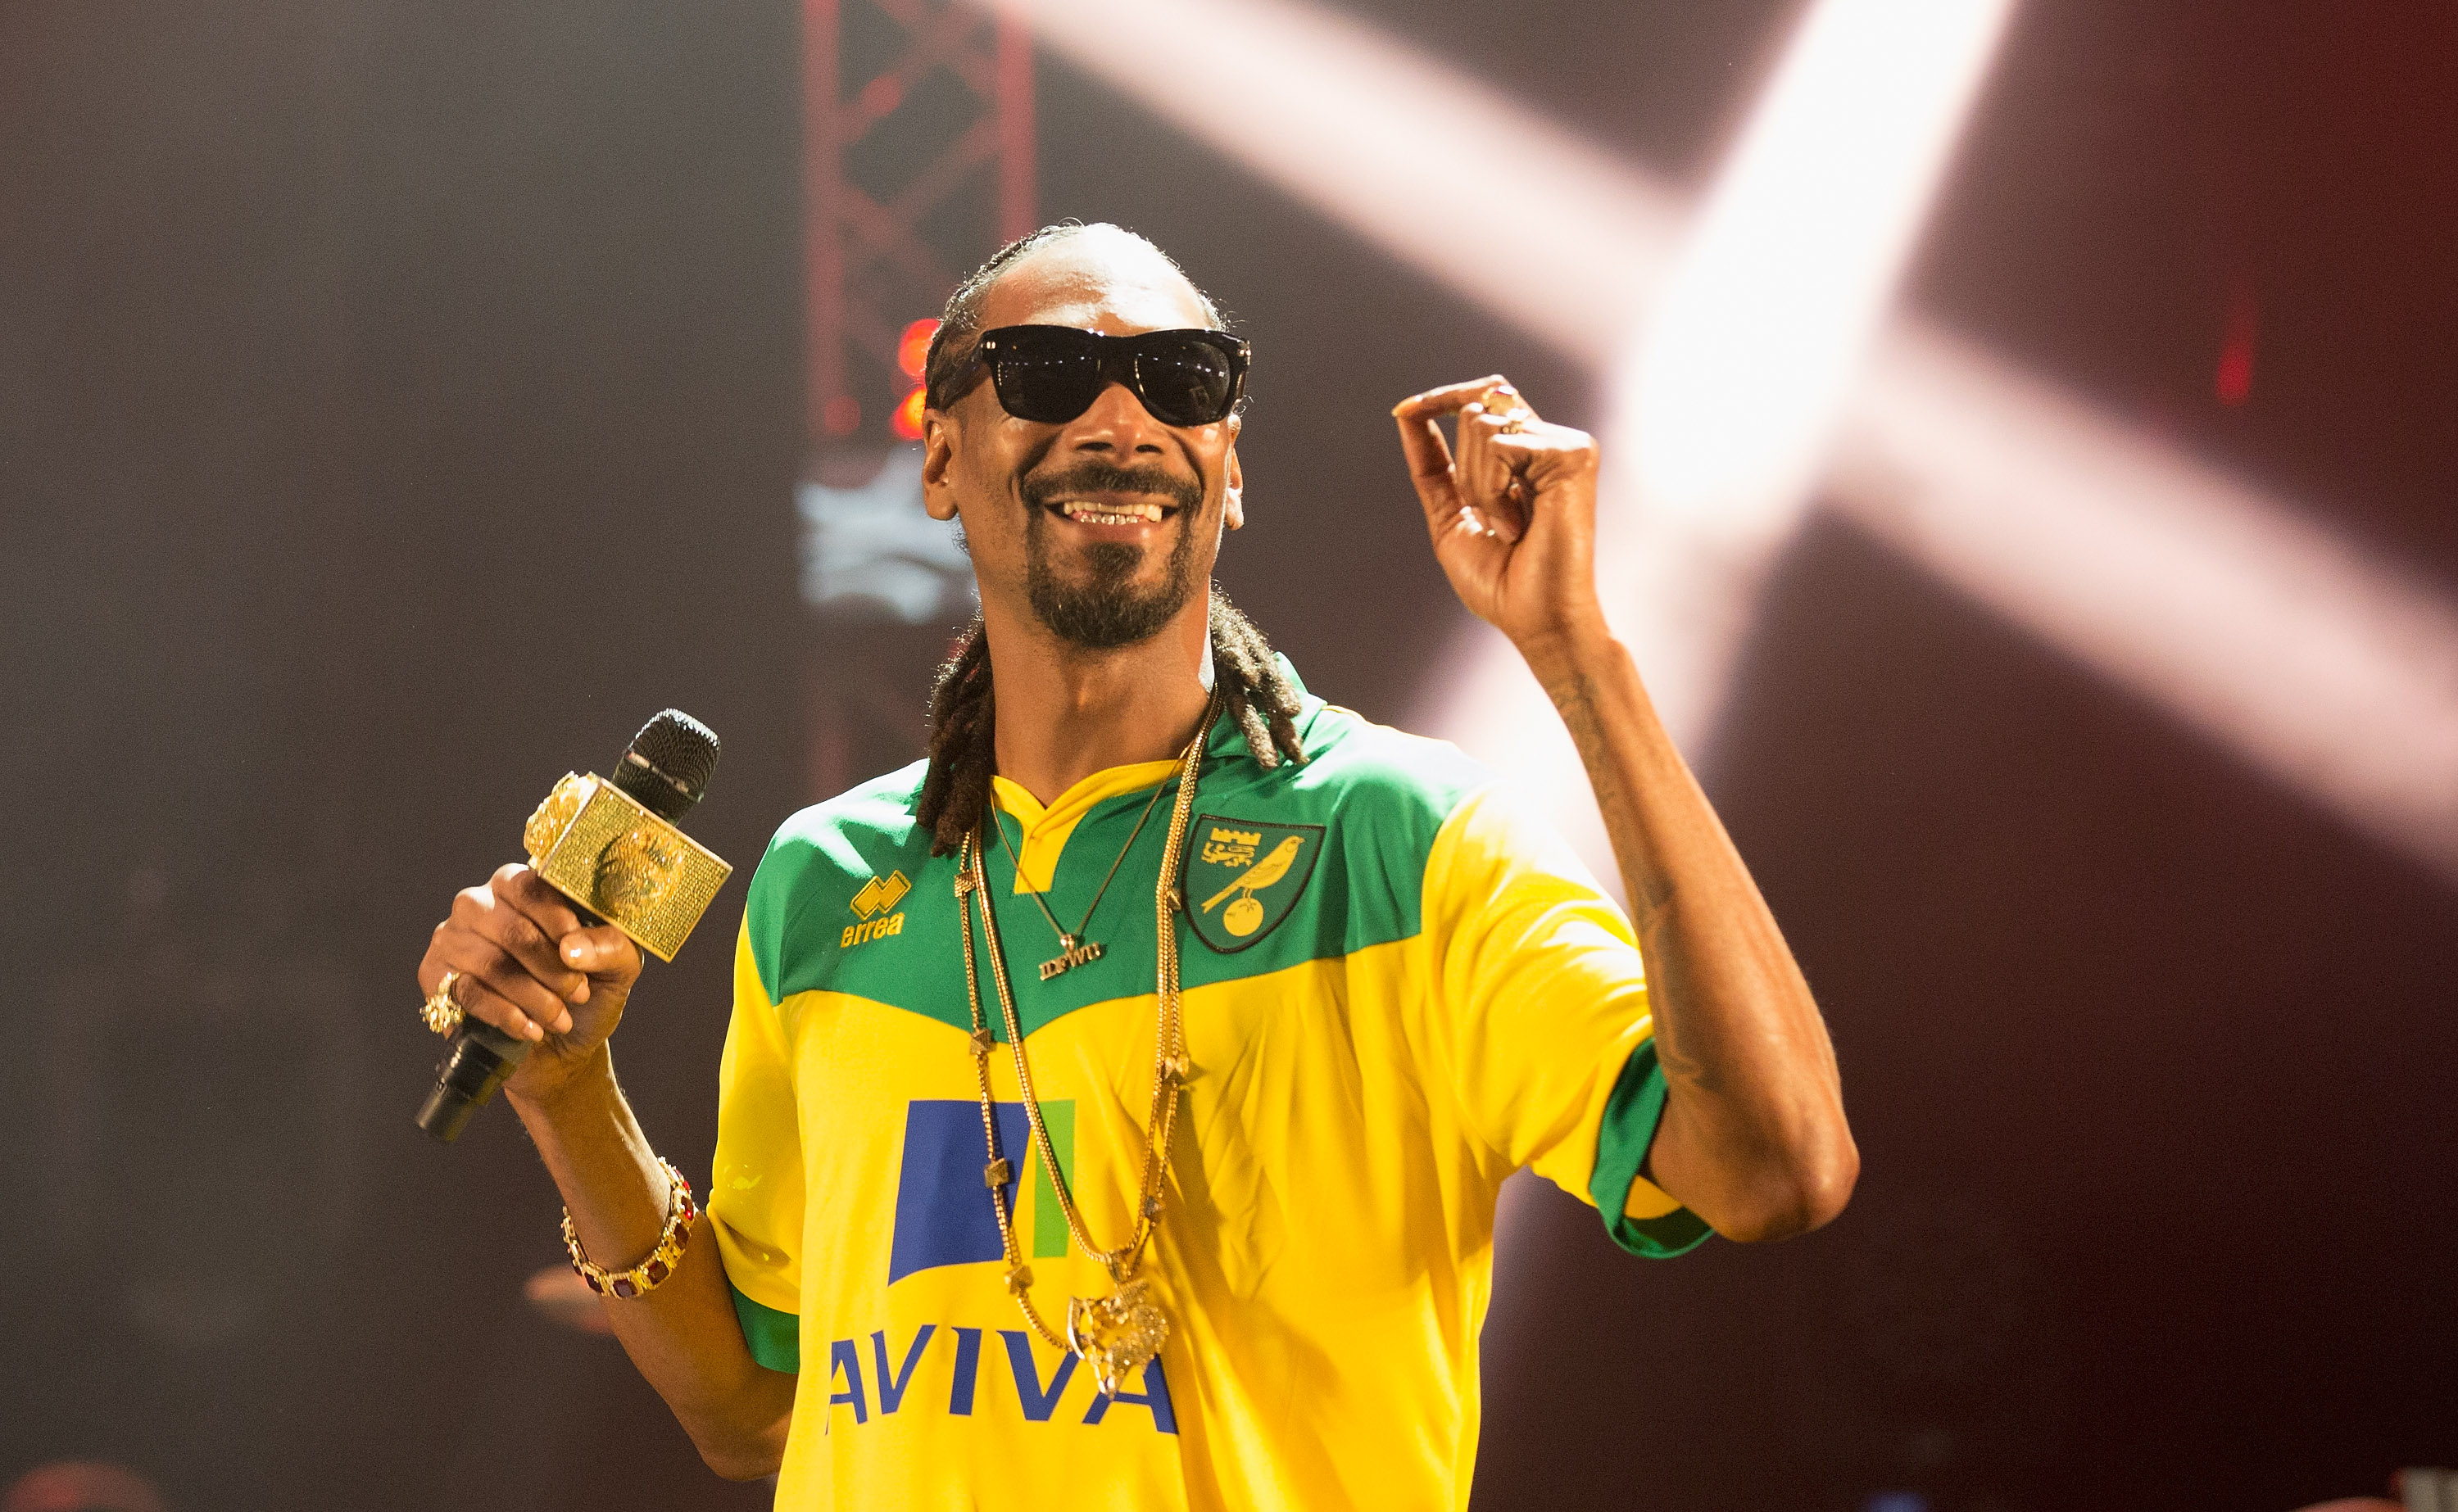 Snoop Dogg performs on stage at BBC Radio 1's Big Weekend at Earlham Park on May 23, 2015, in Norwich, England